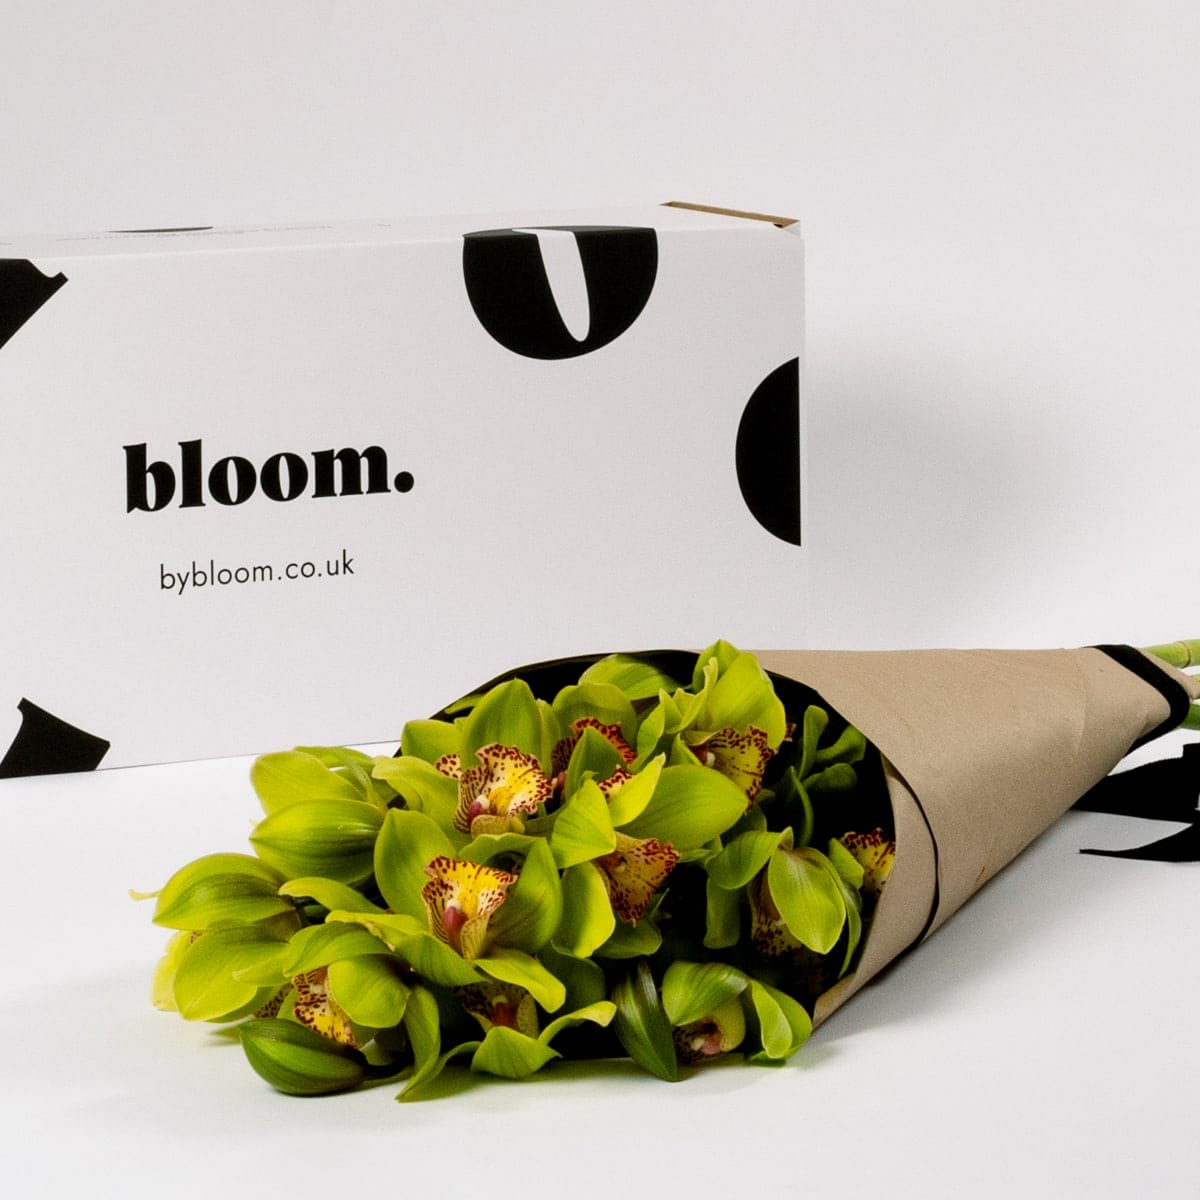 Bloom Flower Delivery | Chartreuse Green Cymbidium